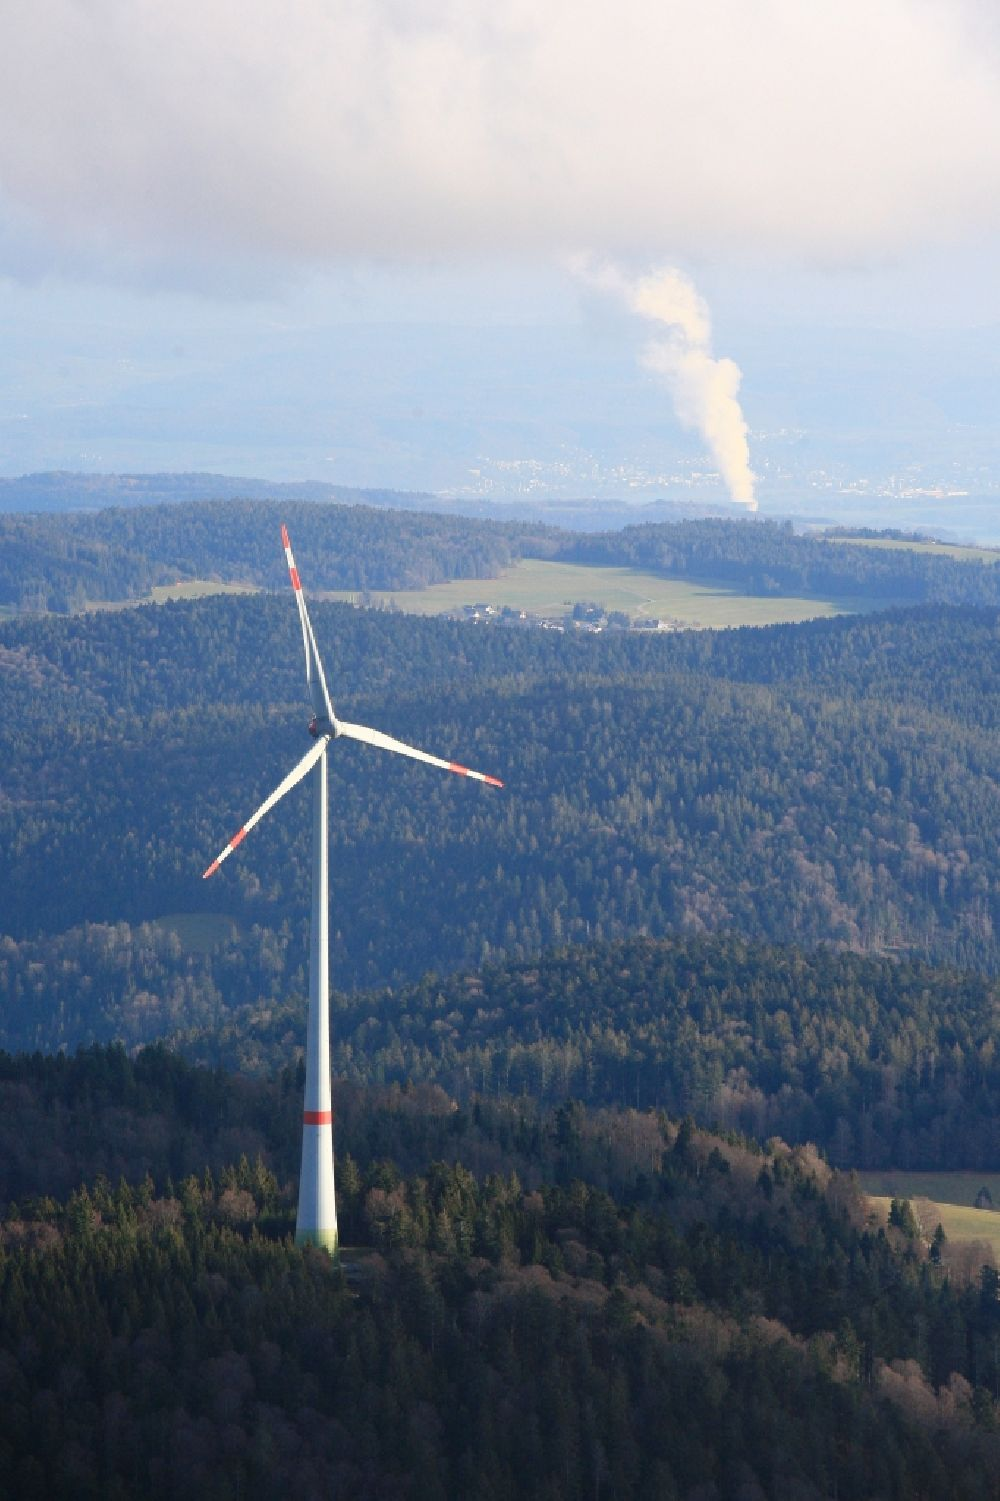 Schopfheim from the bird's eye view: Wind turbines of the wind farm Rohrenkopf in the Black Forest in Gersbach in the state Baden-Wurttemberg, Germany. In the background the steam column of swiss nuclear power plant Leibstadt KKL. Symbolic image for the controversial debate of nuclear power versus renewable power.